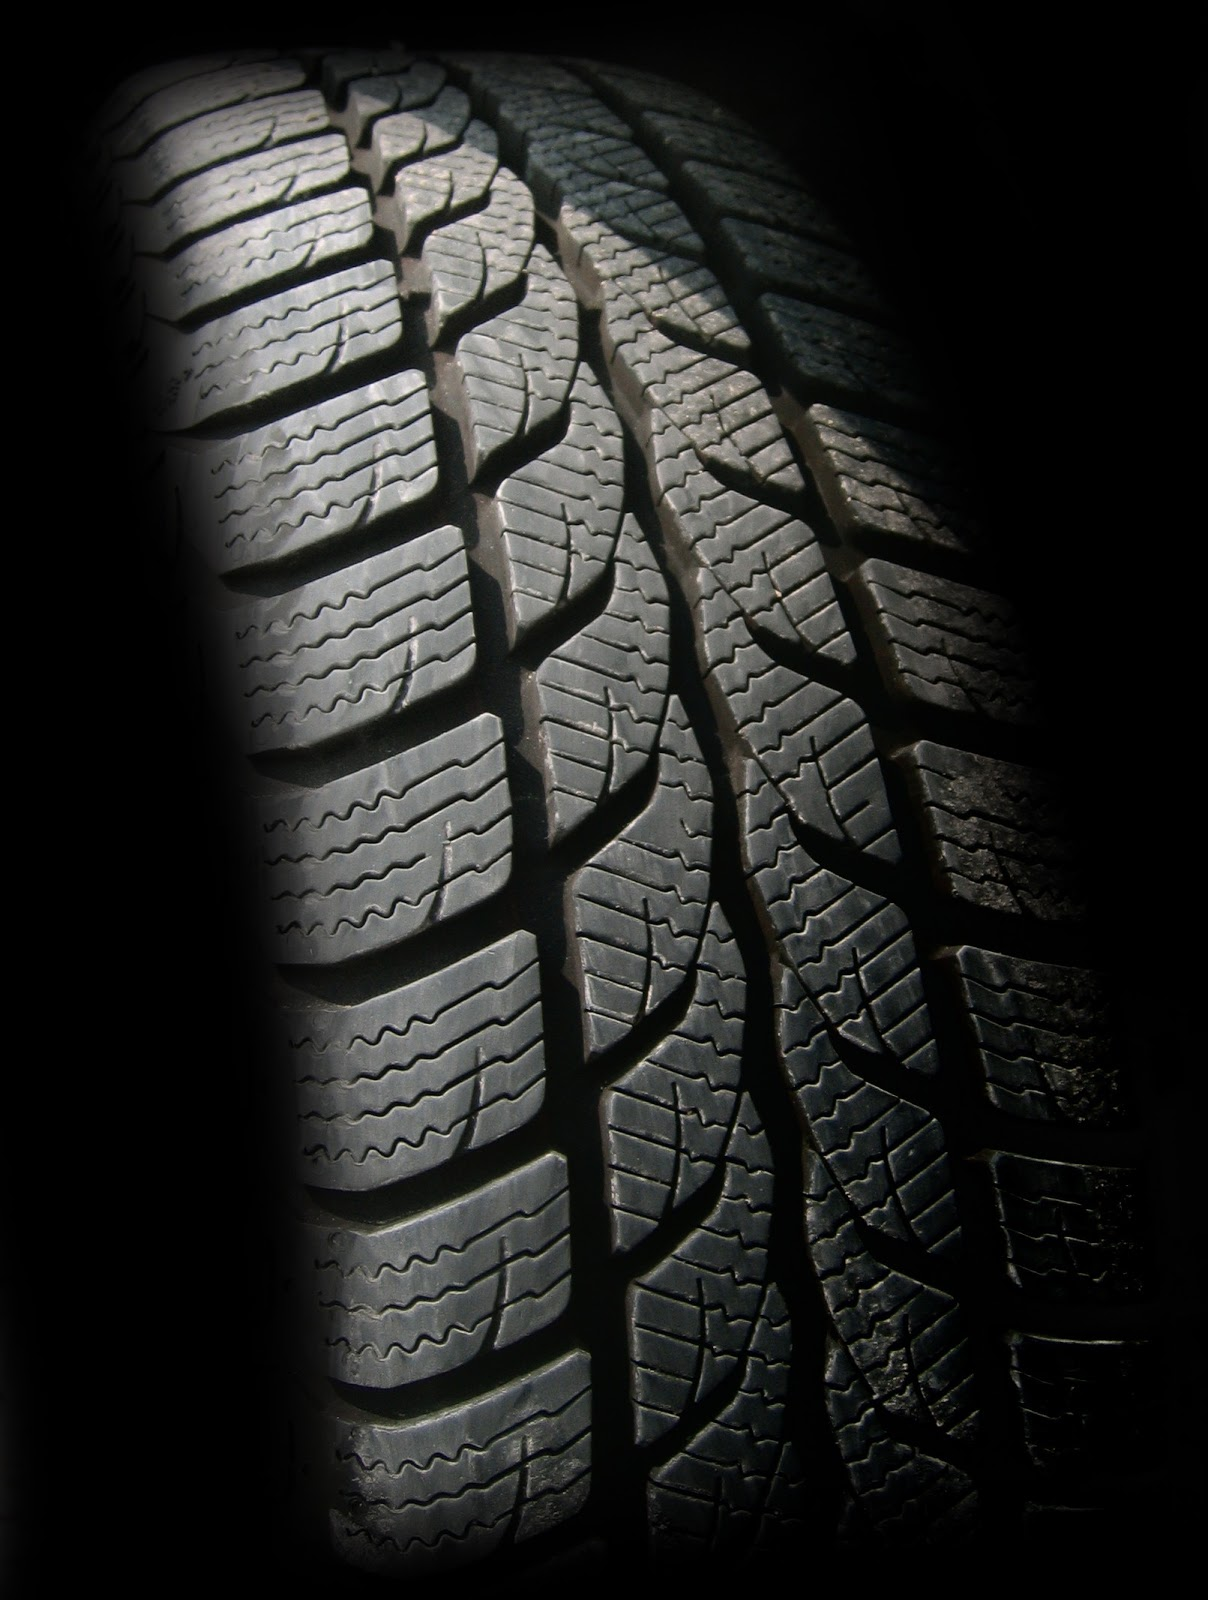 The type and condition of your tires will affect range